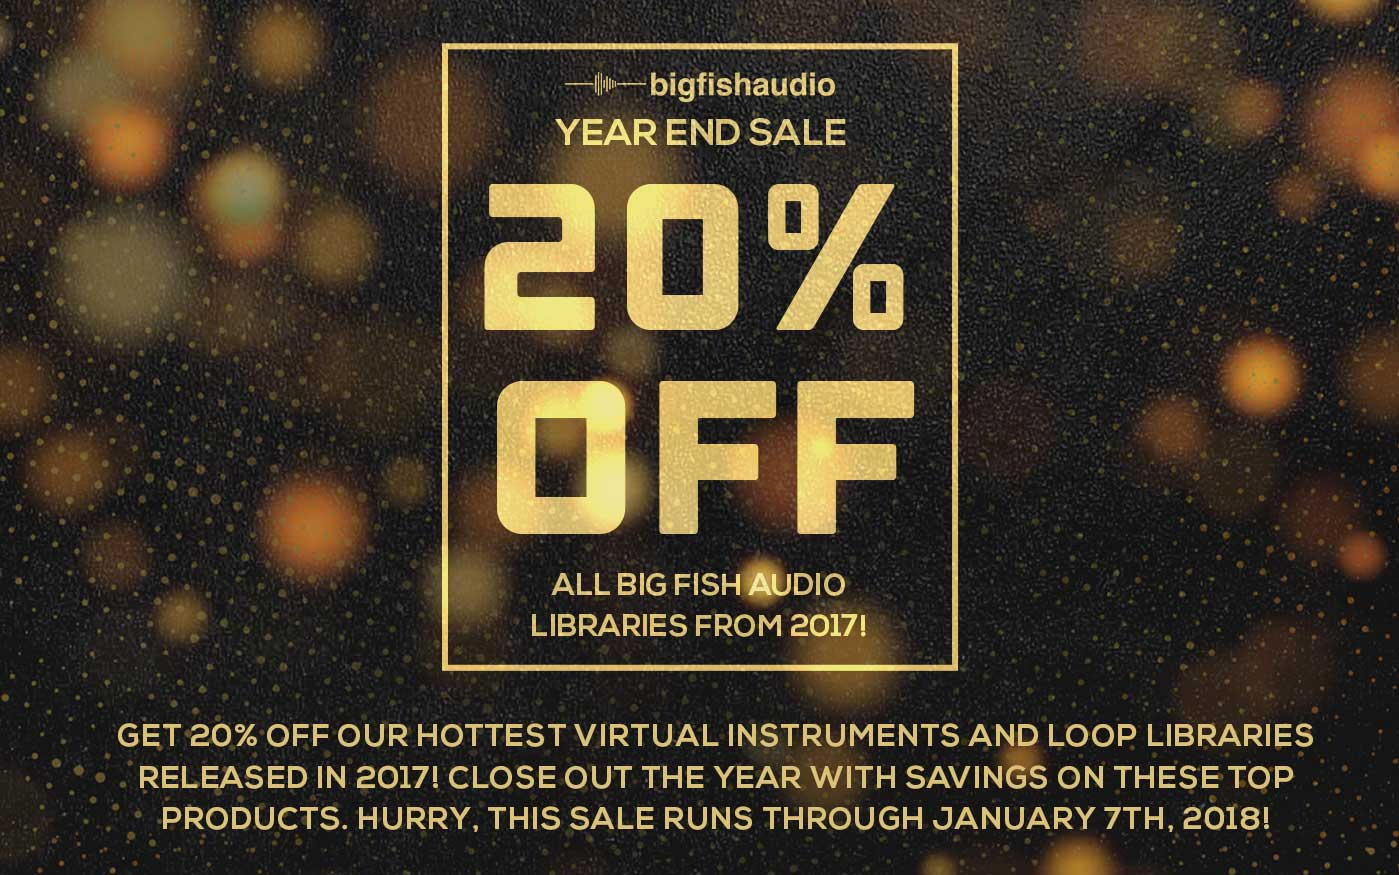 Big Fish Audio Year End Sale